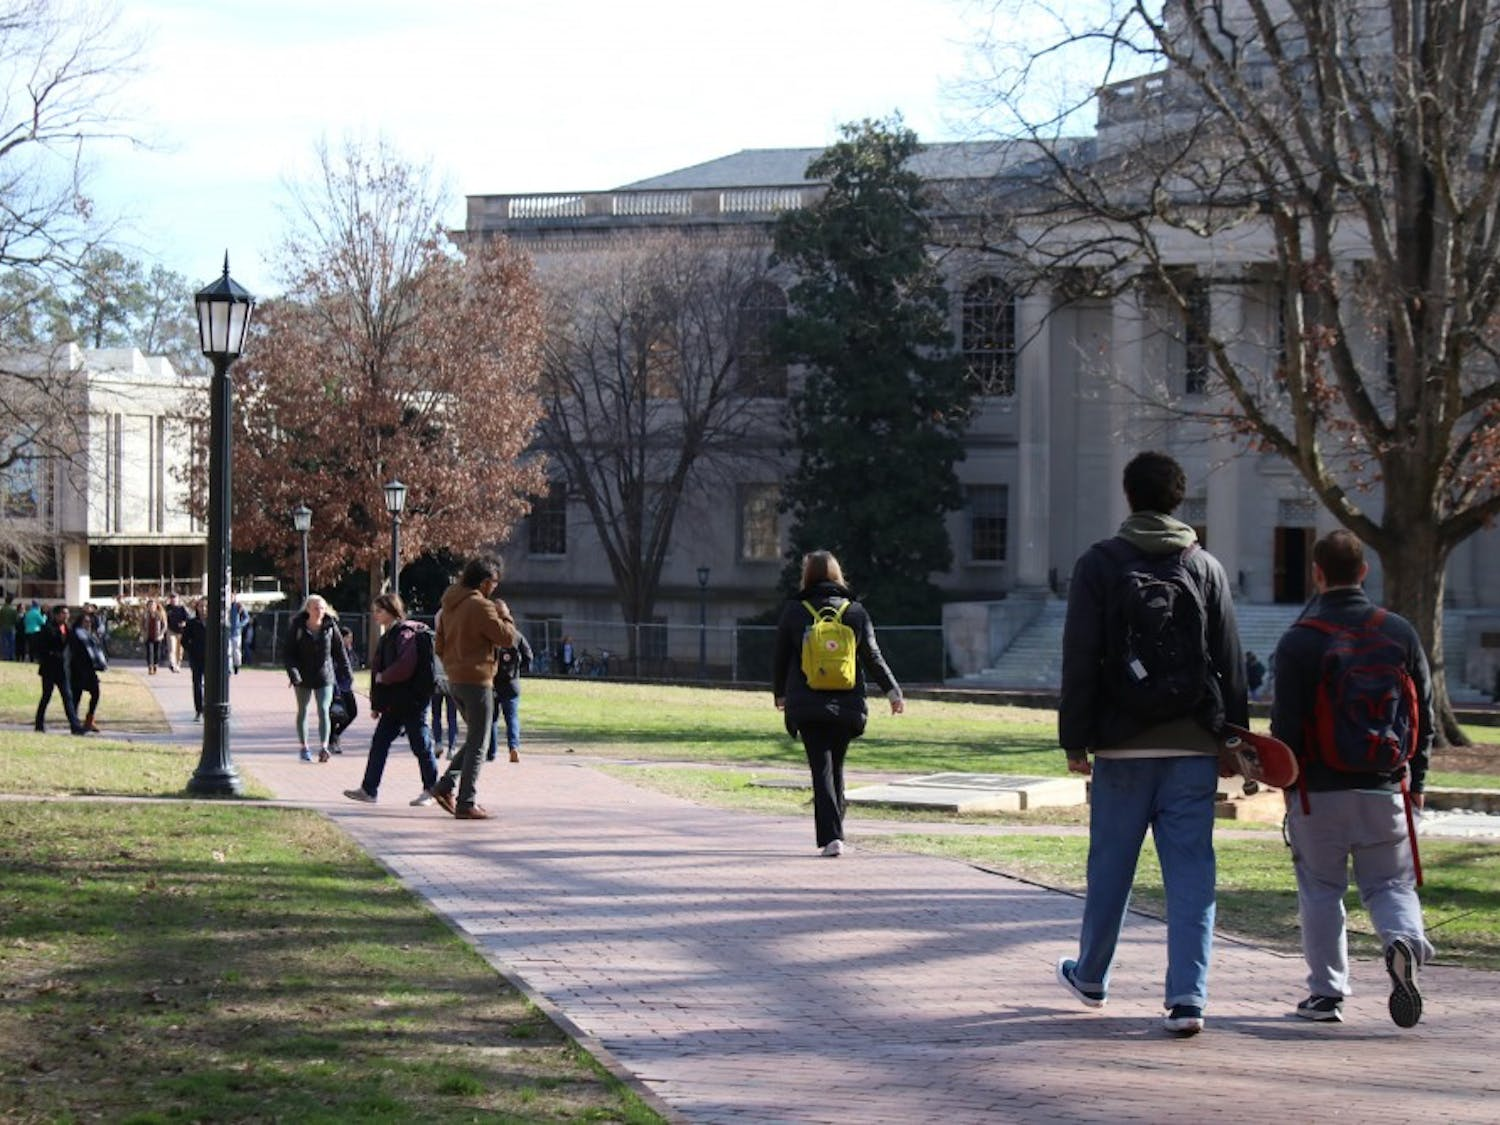 UNC students resume class as normal; the main quad is routinely crowded on Jan. 10, 2019 during the first week of class.